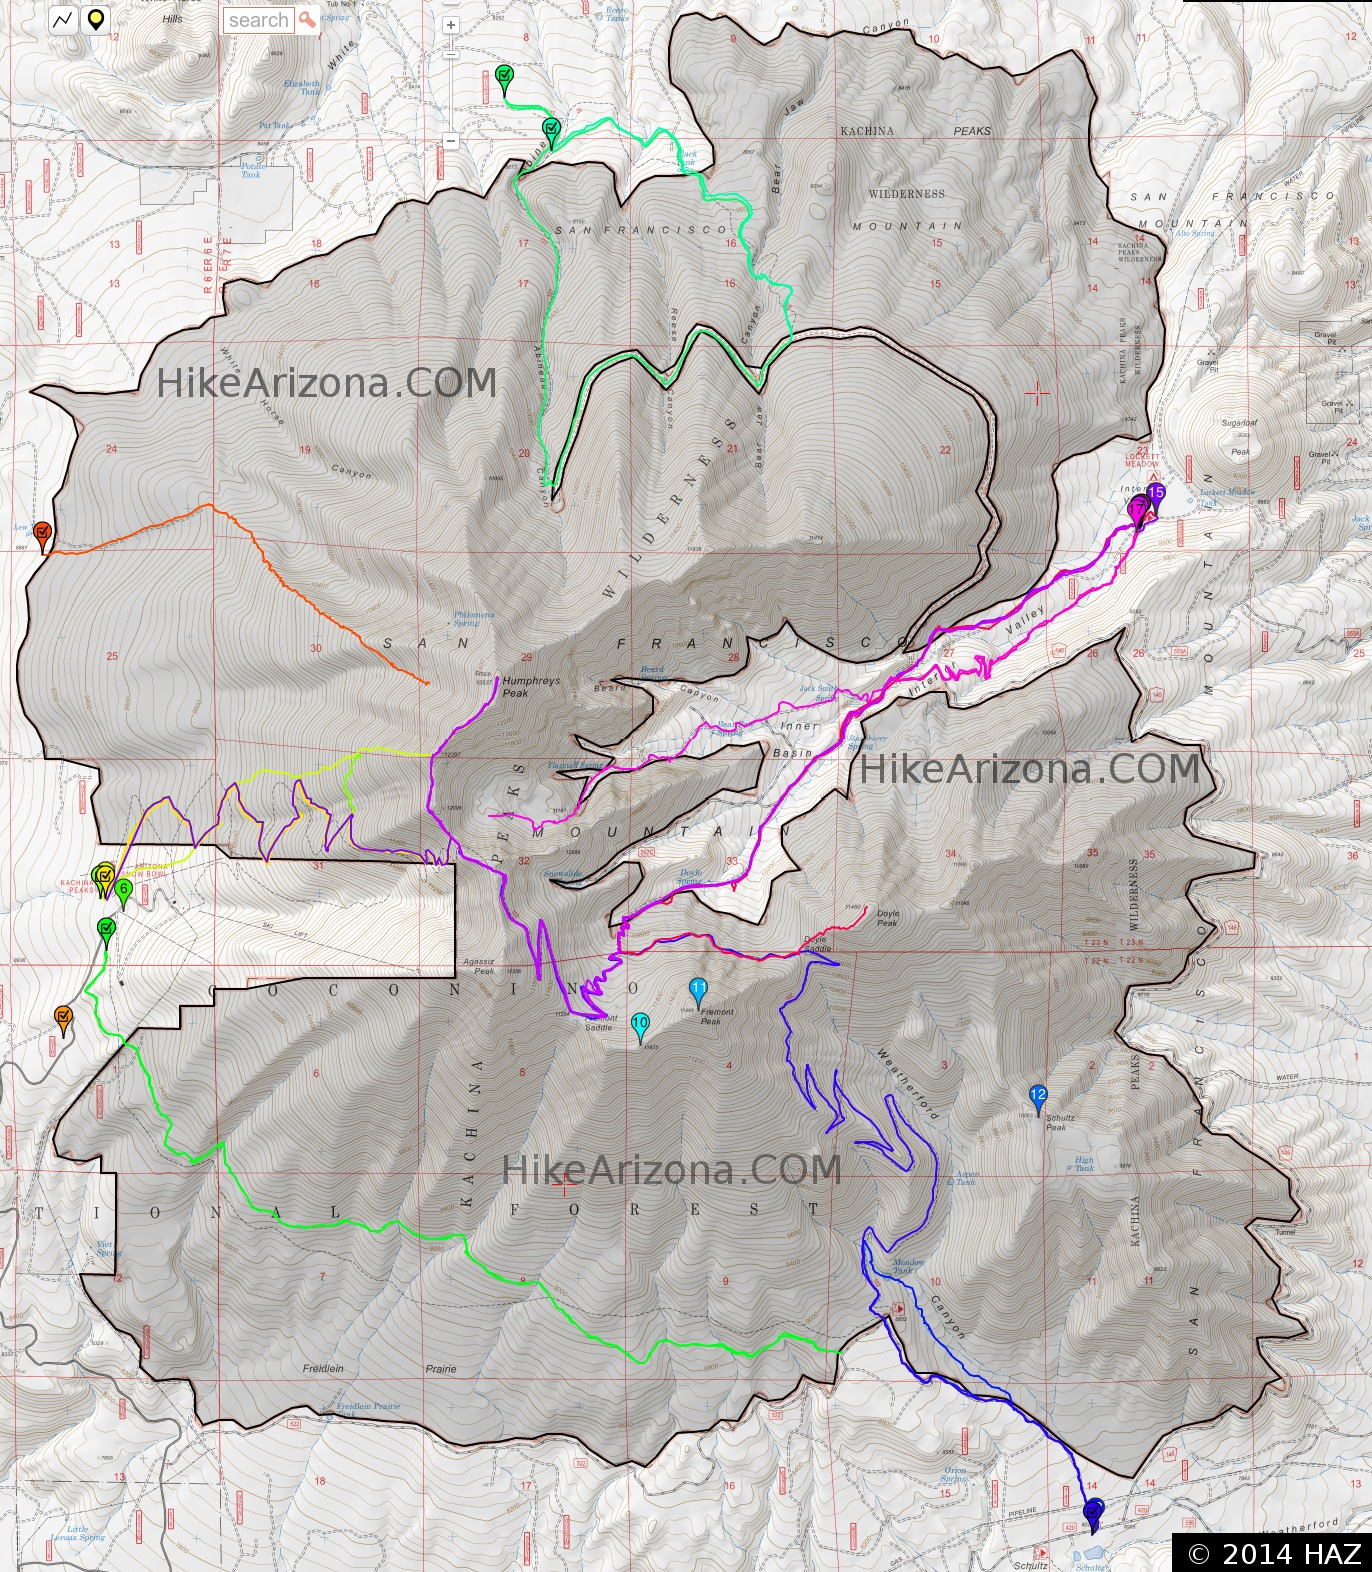 phoenix mountain preserve map with Decoder on 5751515 besides Azsedona in addition Stock Image Springtime Sunrise Sonoran Desert Lights Mountains Cacti Blooming Wildflowers Mcdowell Preserve Scottsdale Arizona Image38638231 additionally Decoder furthermore South Mountain Maps Through Time.